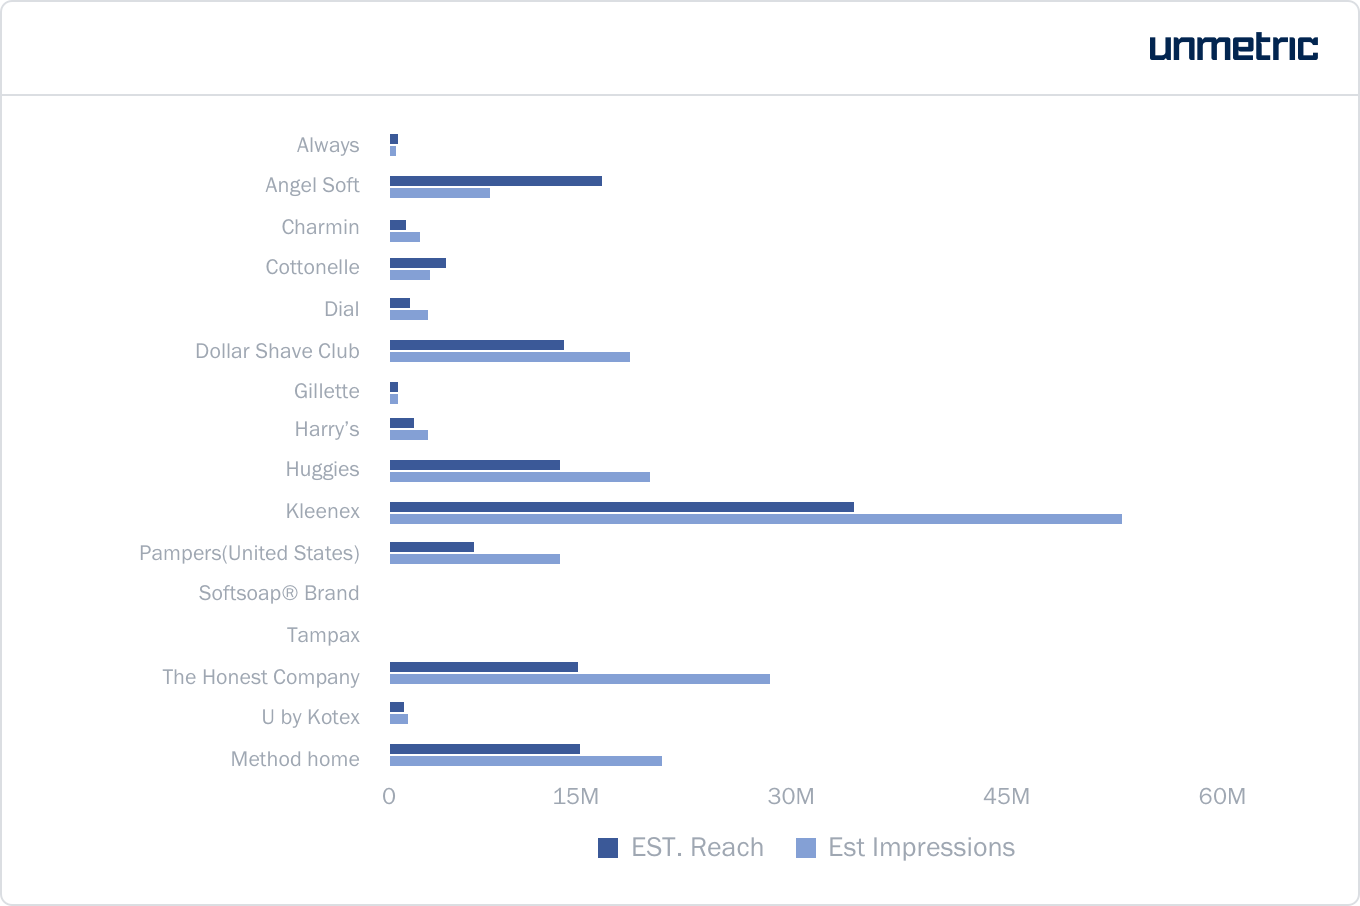 Overall estimated reach and impressions for each brand